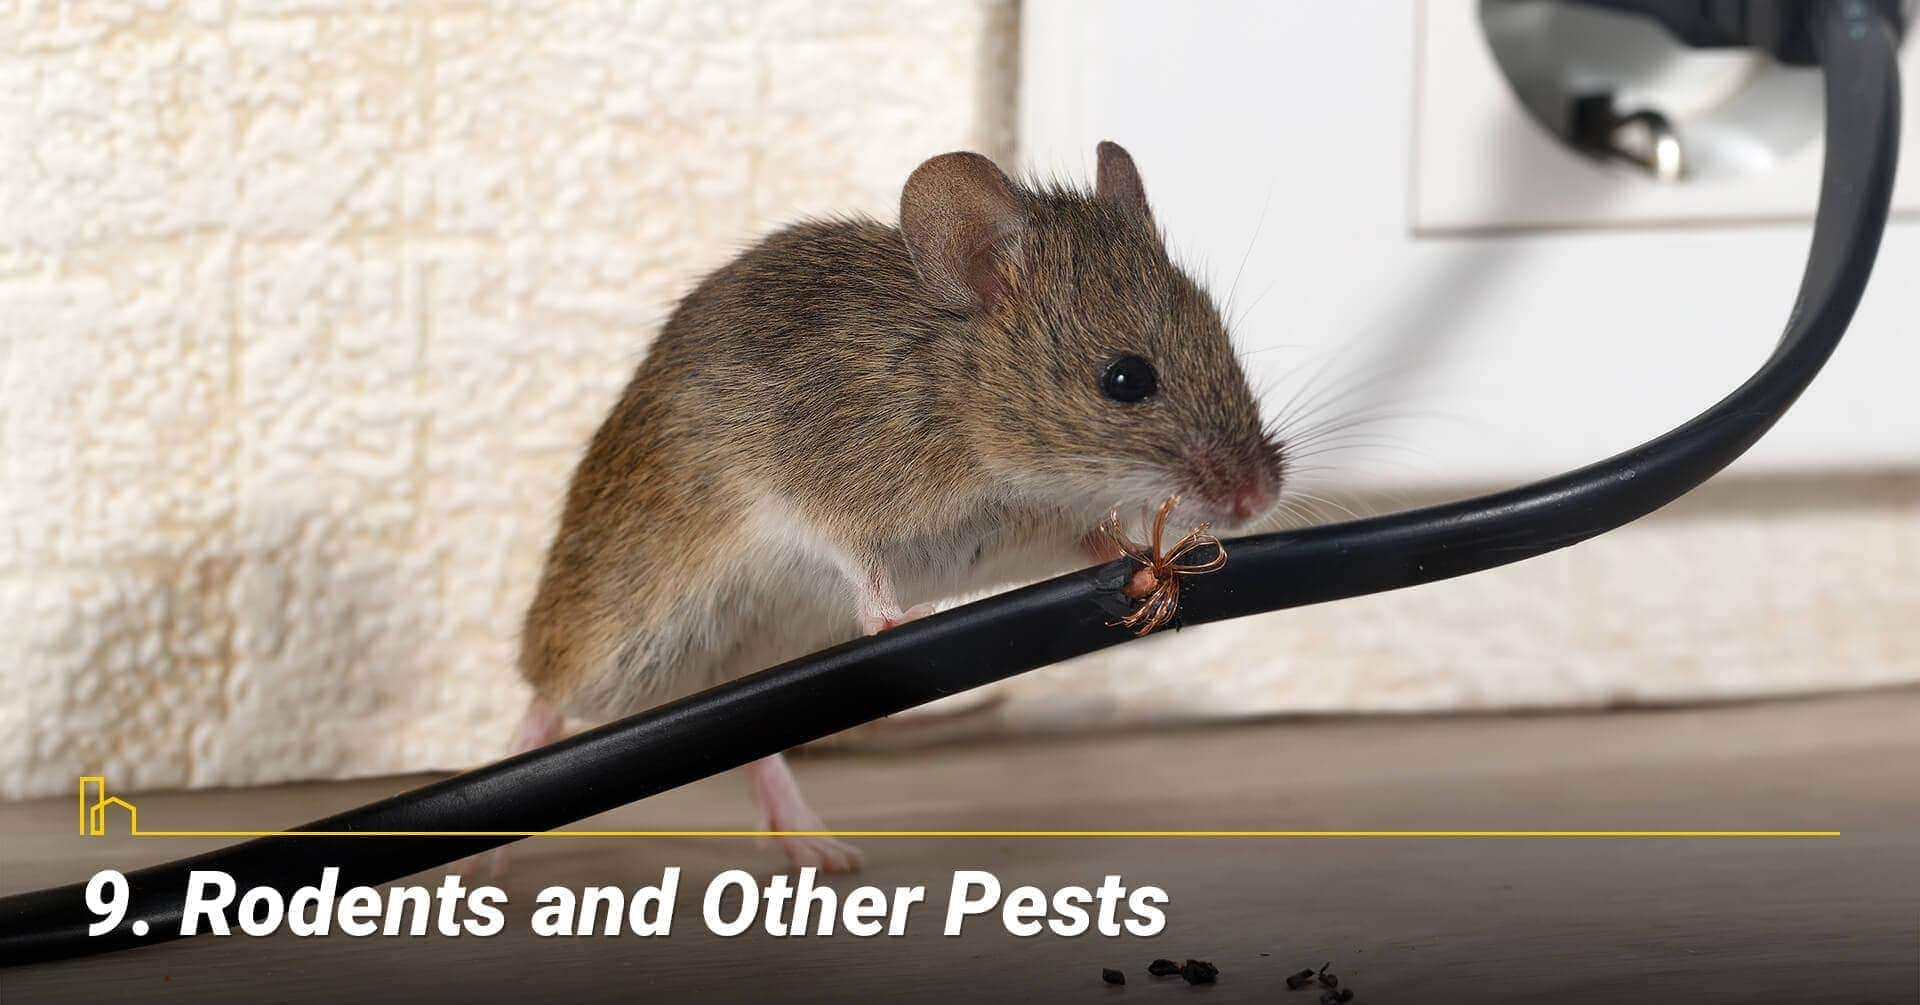 Rodents and Other Pests, unwanted pests around the house